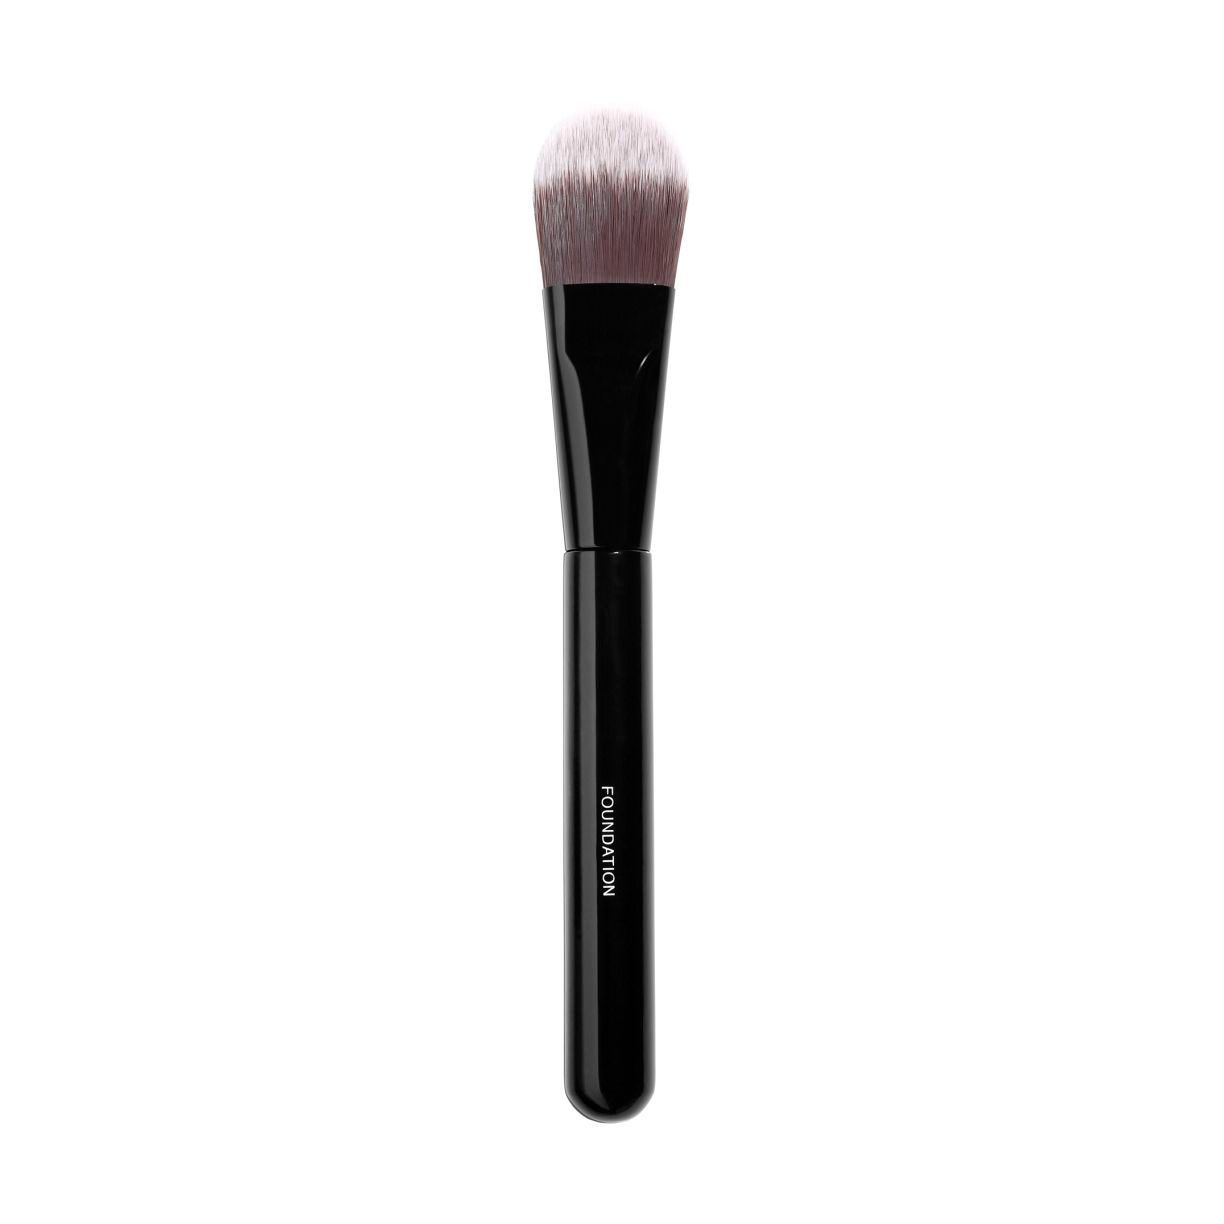 PINCEAU FOND DE TEINT FOUNDATION BRUSH